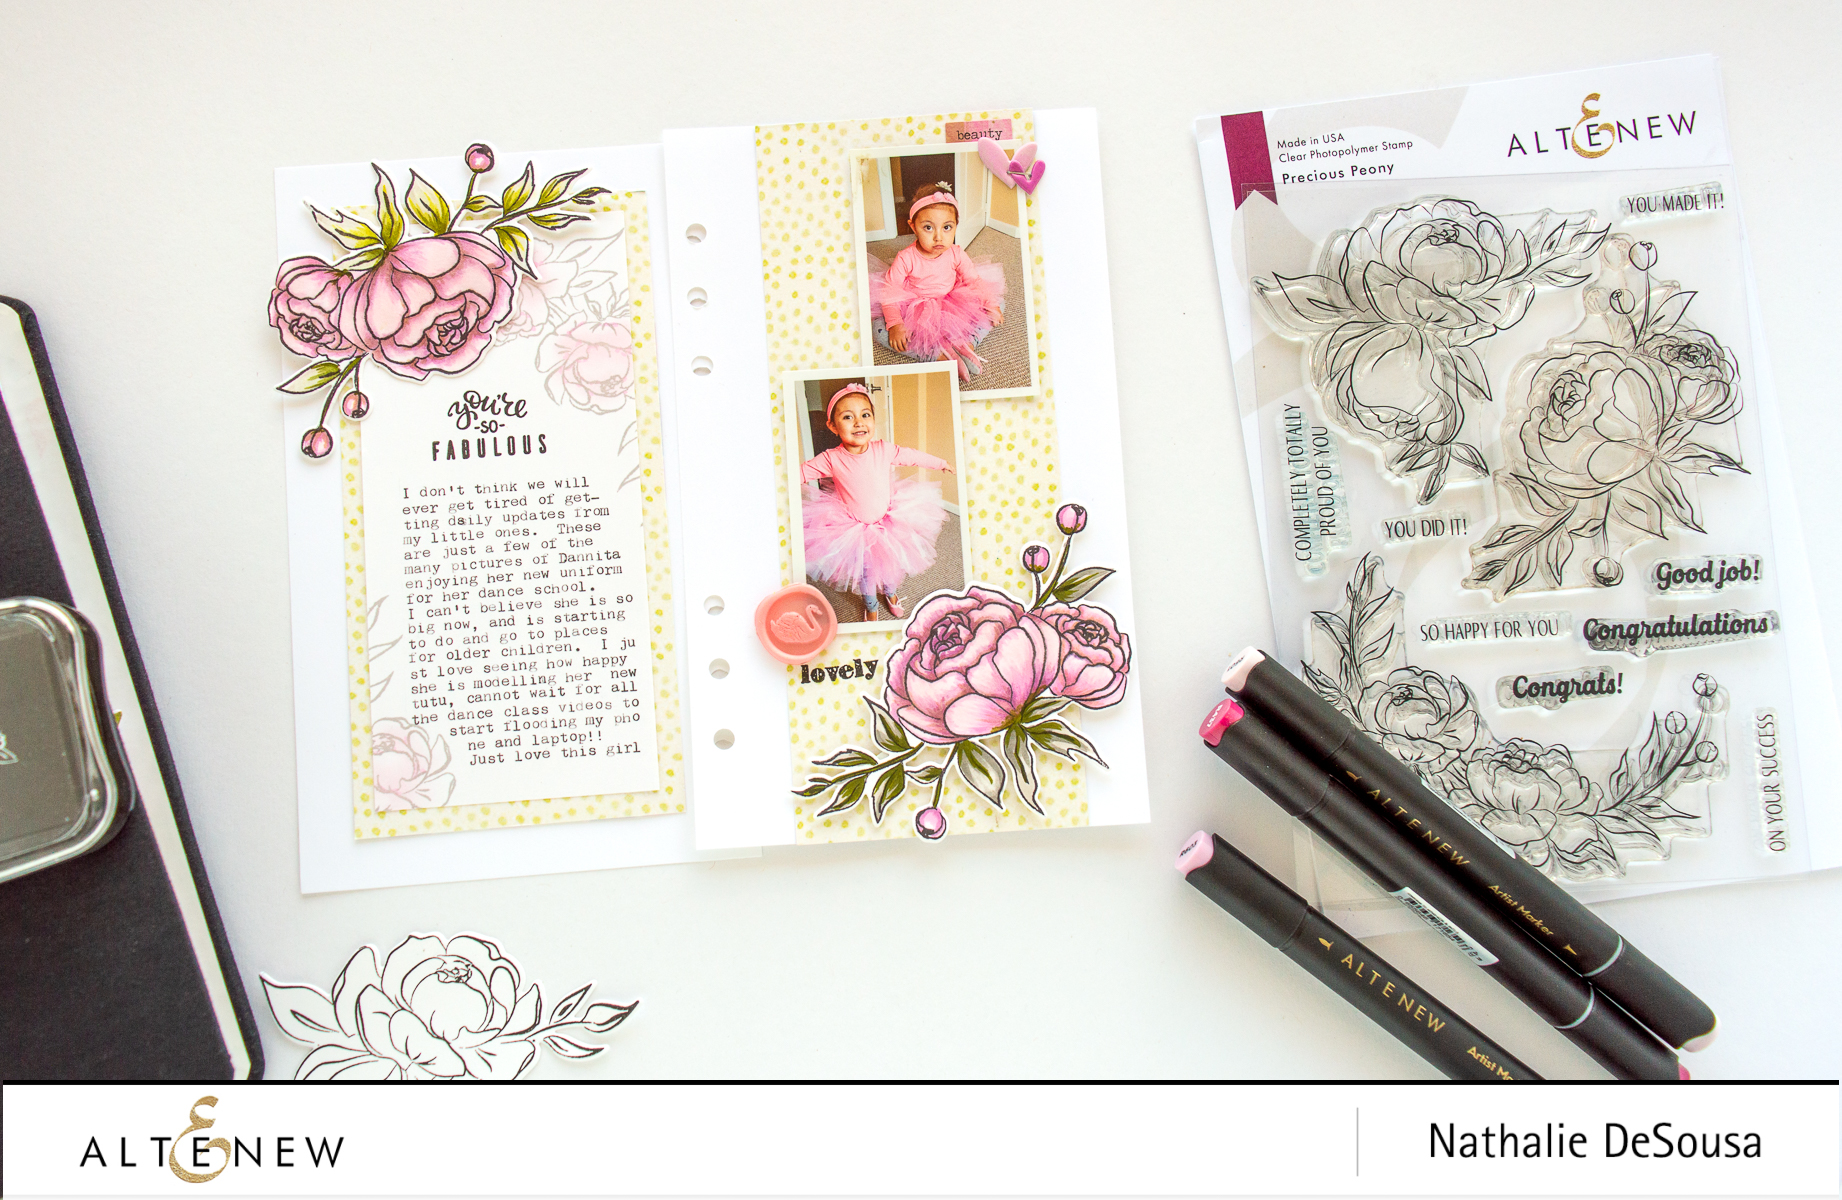 @ALTENEW- PRECIOUS PEONY STAMP SET_You Are Fabulous by Nathalie DeSousa